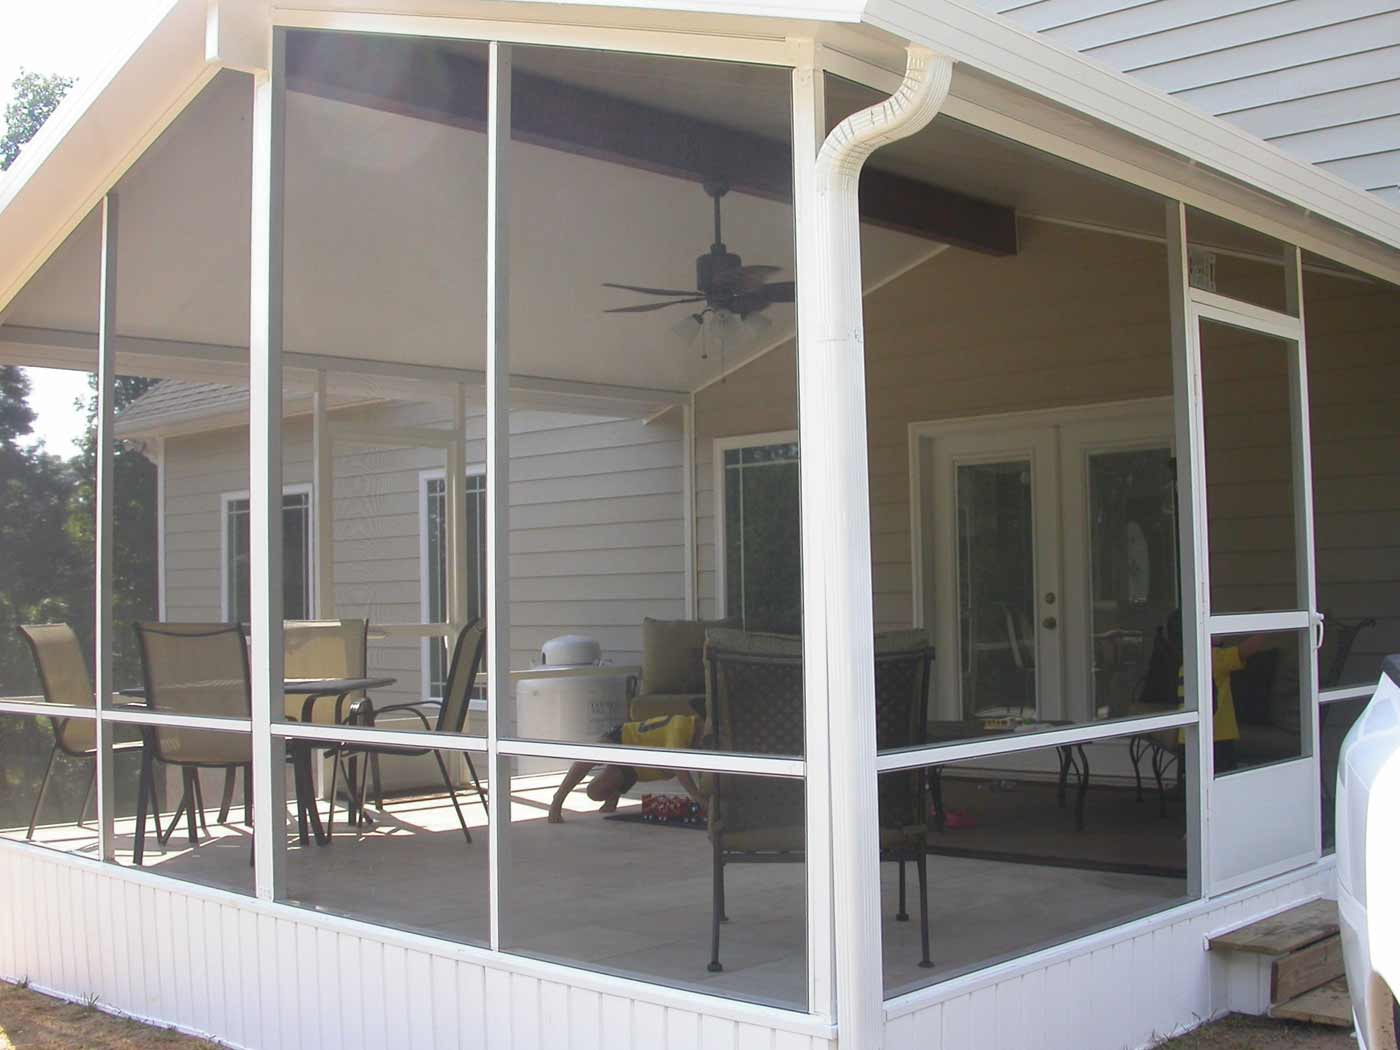 Metal frame awning windows for living room